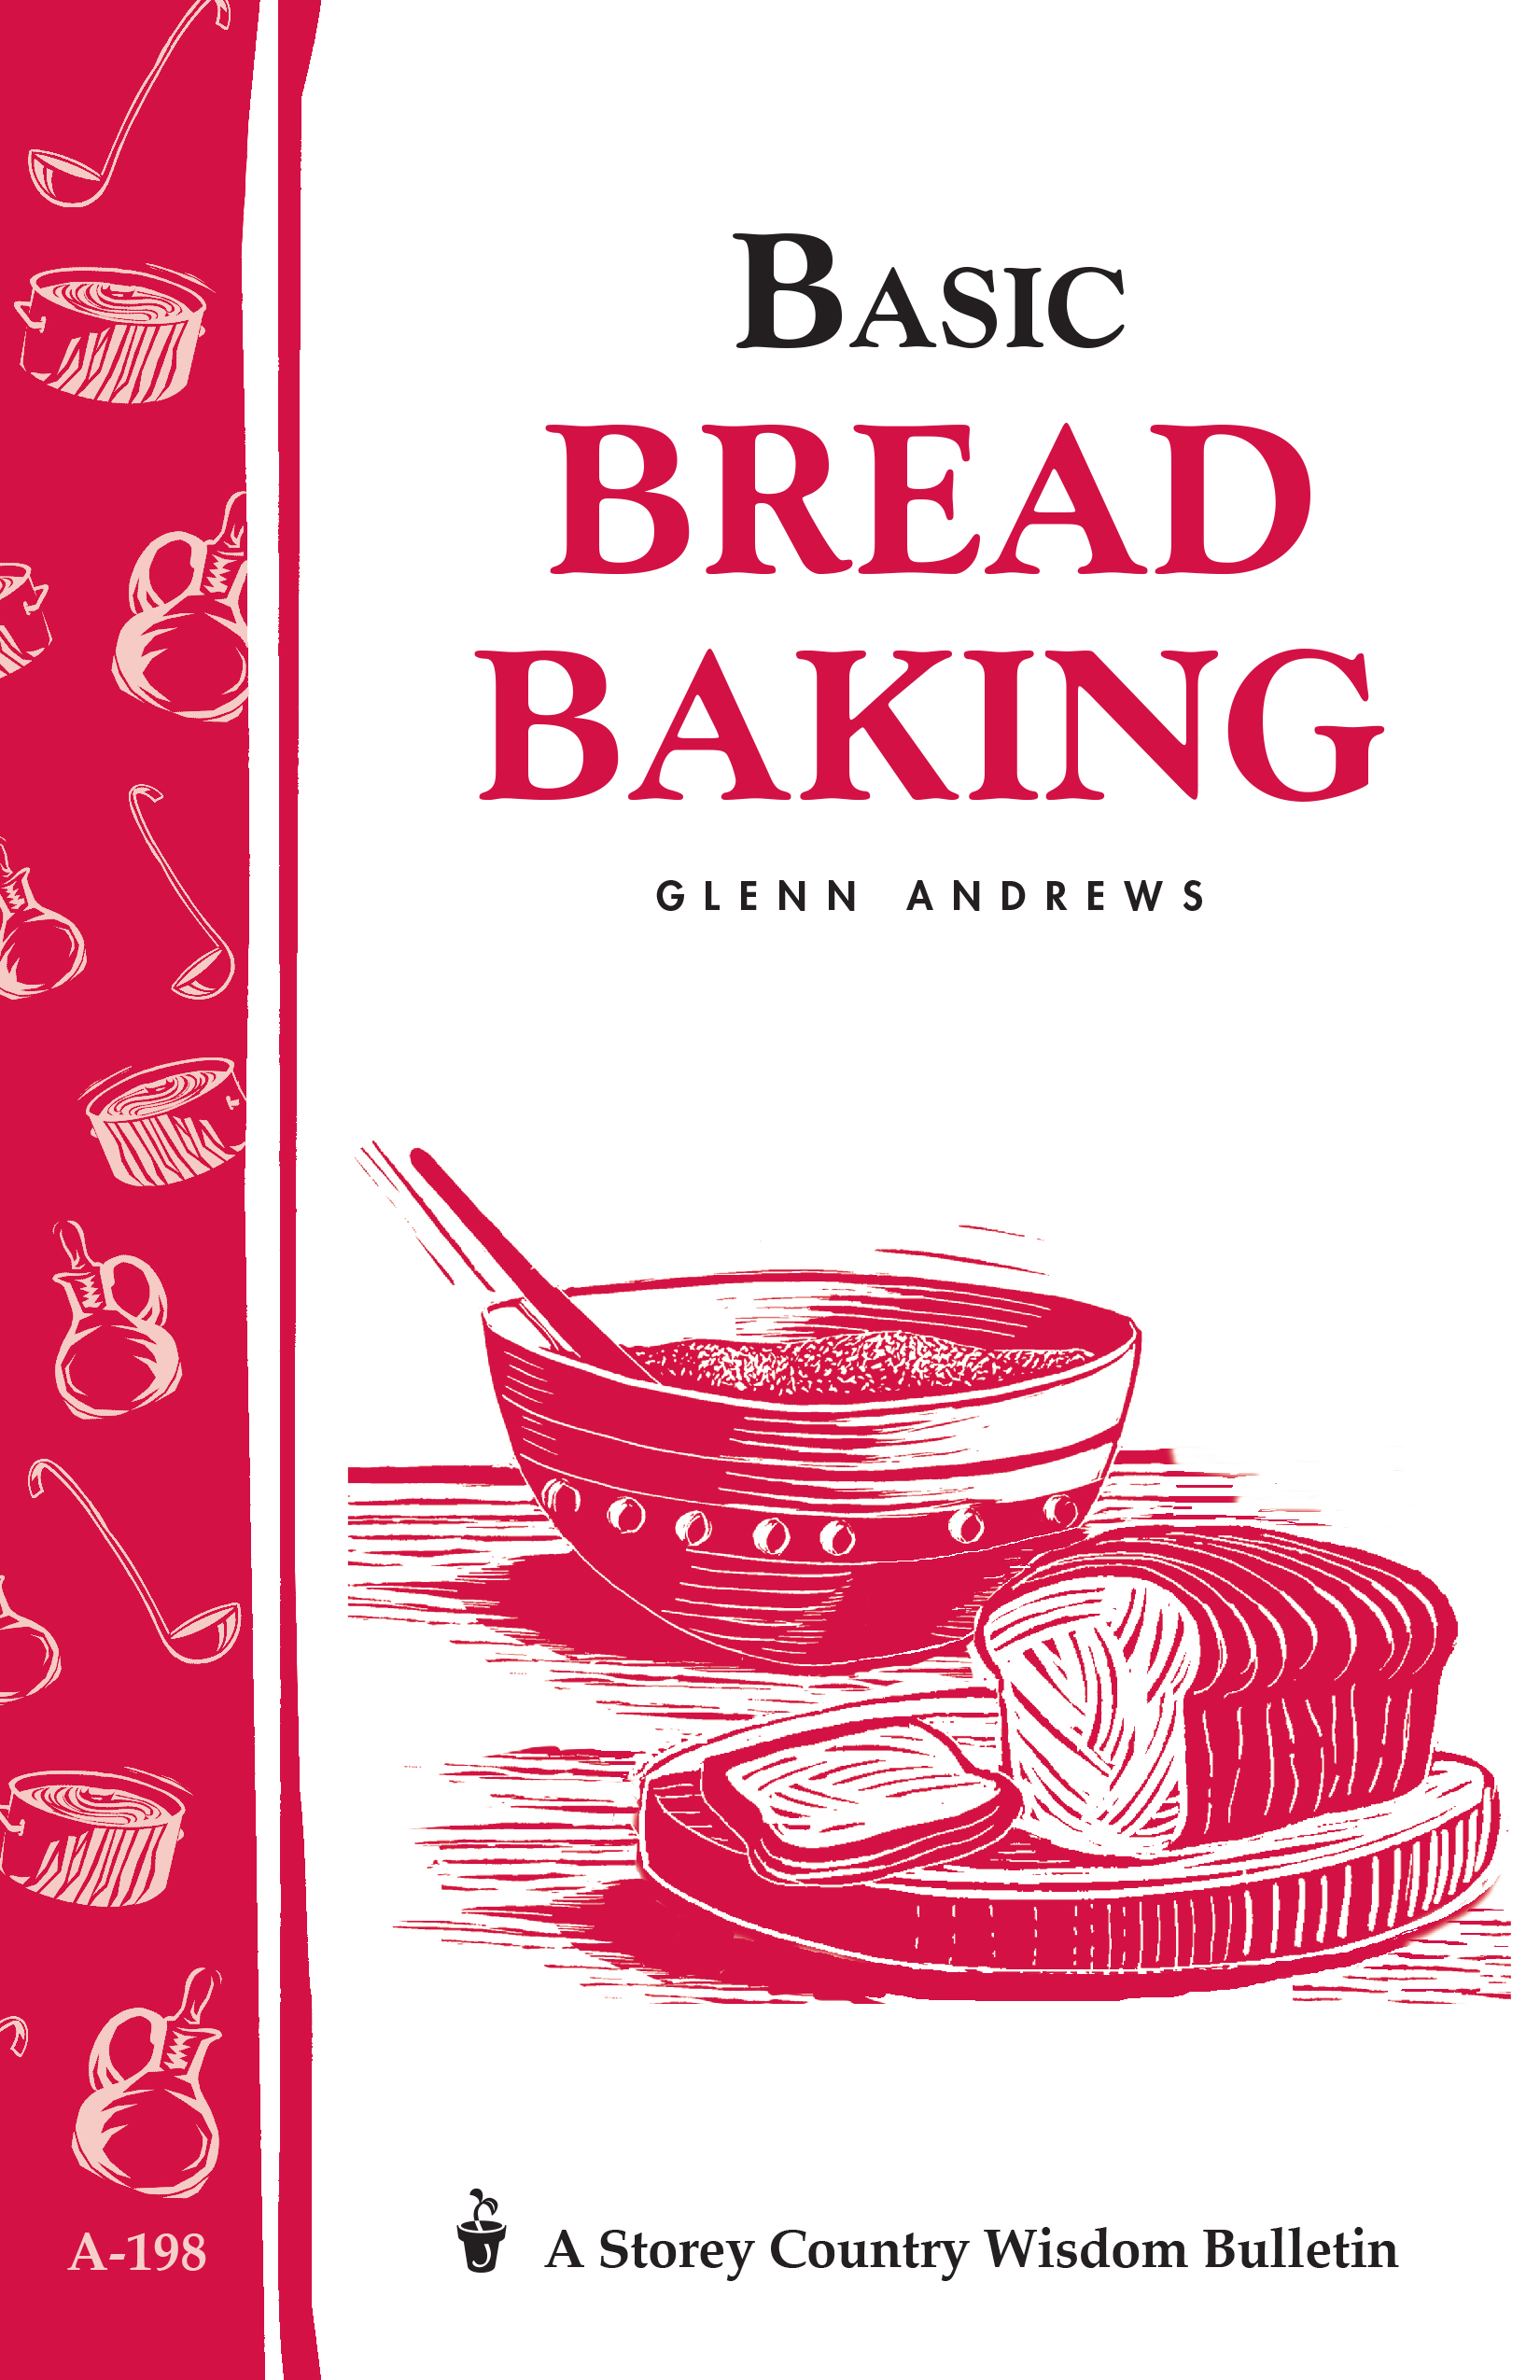 Basic Bread Baking Storey's Country Wisdom Bulletin A-198 - Glenn Andrews